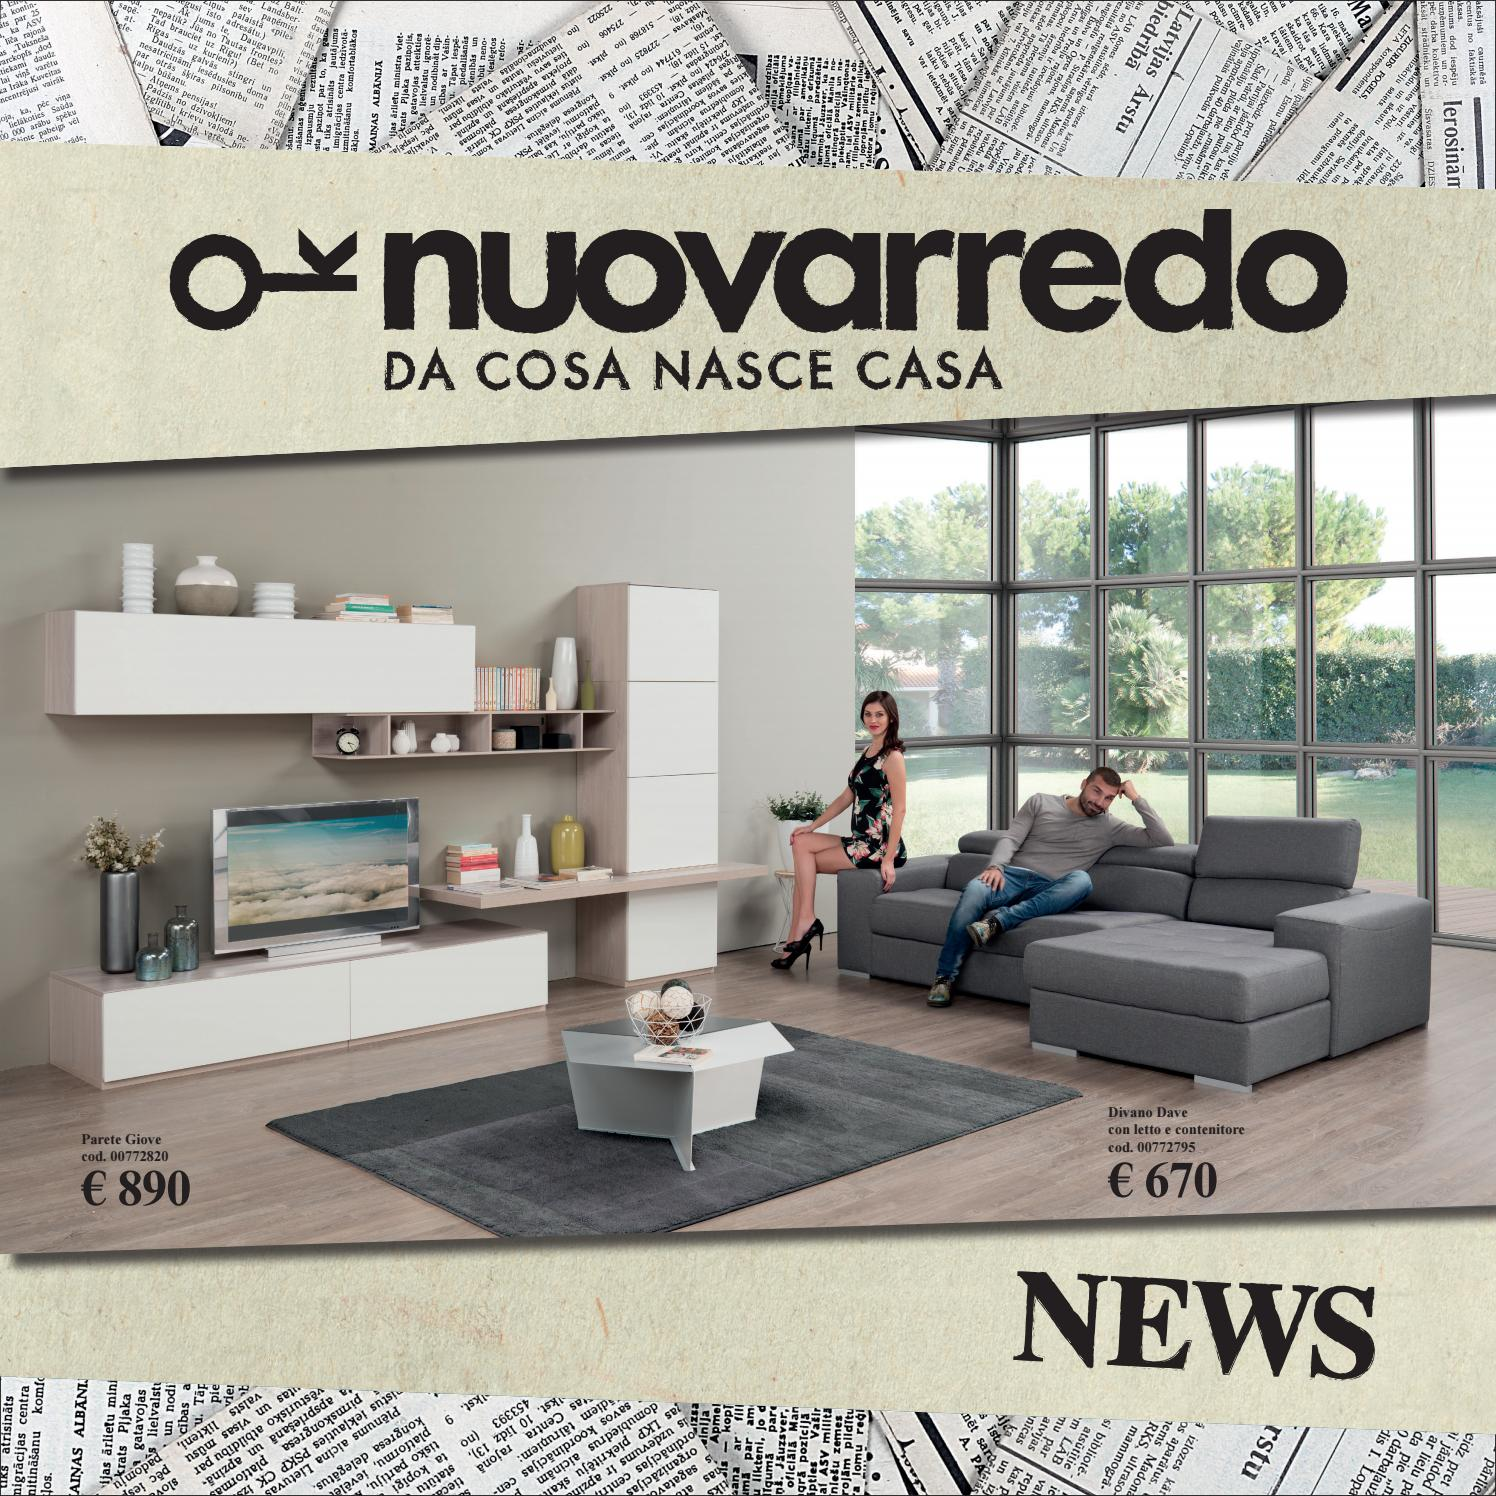 Tabloid Nuovarredo Promo Estate2017 by Nuovarredo - issuu